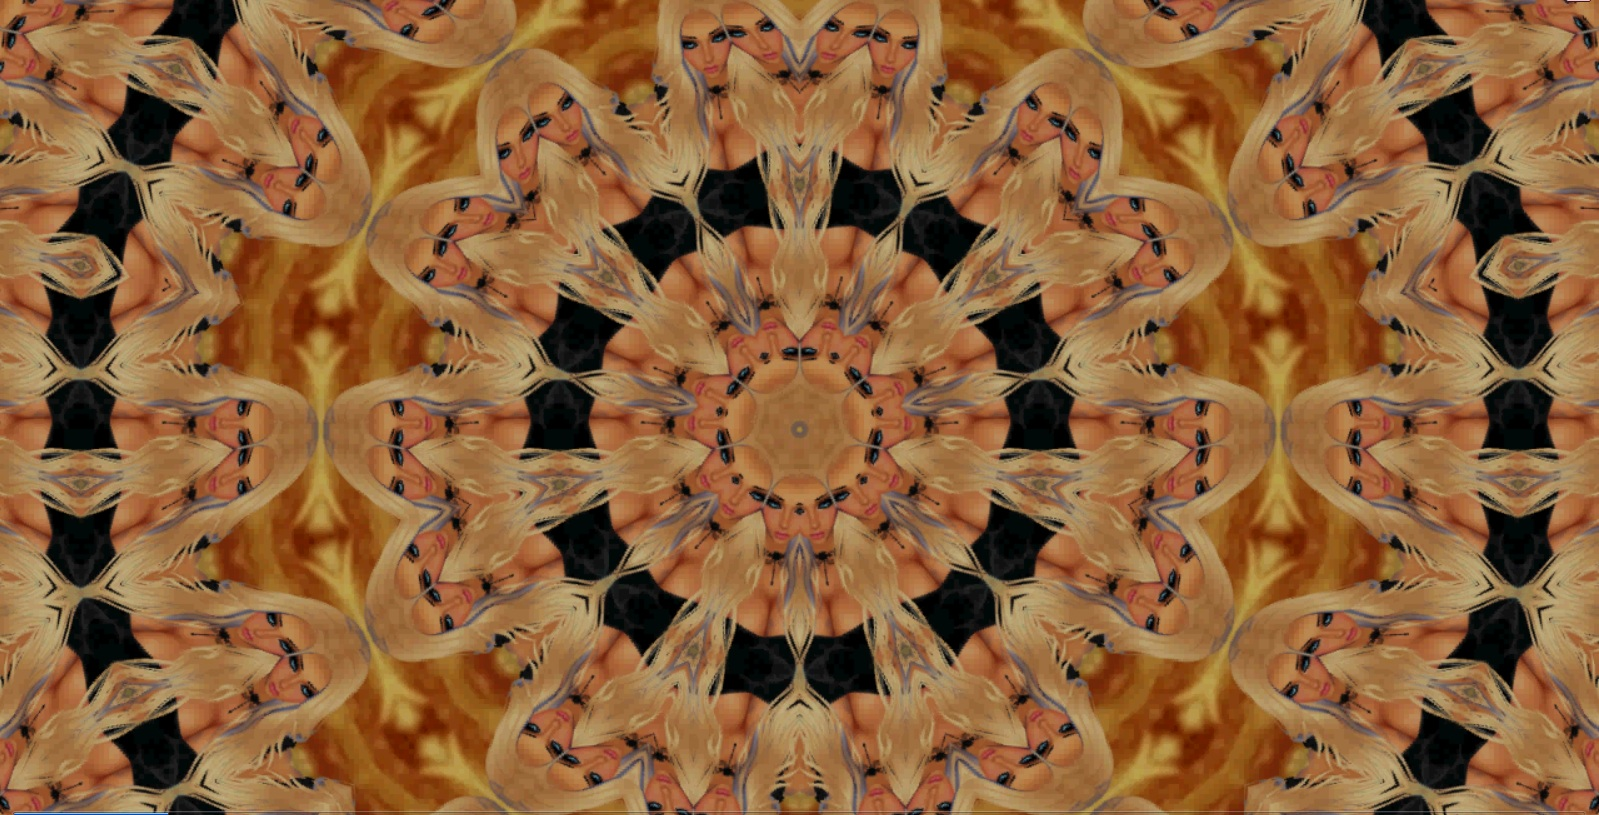 Kaleidocopic Faces